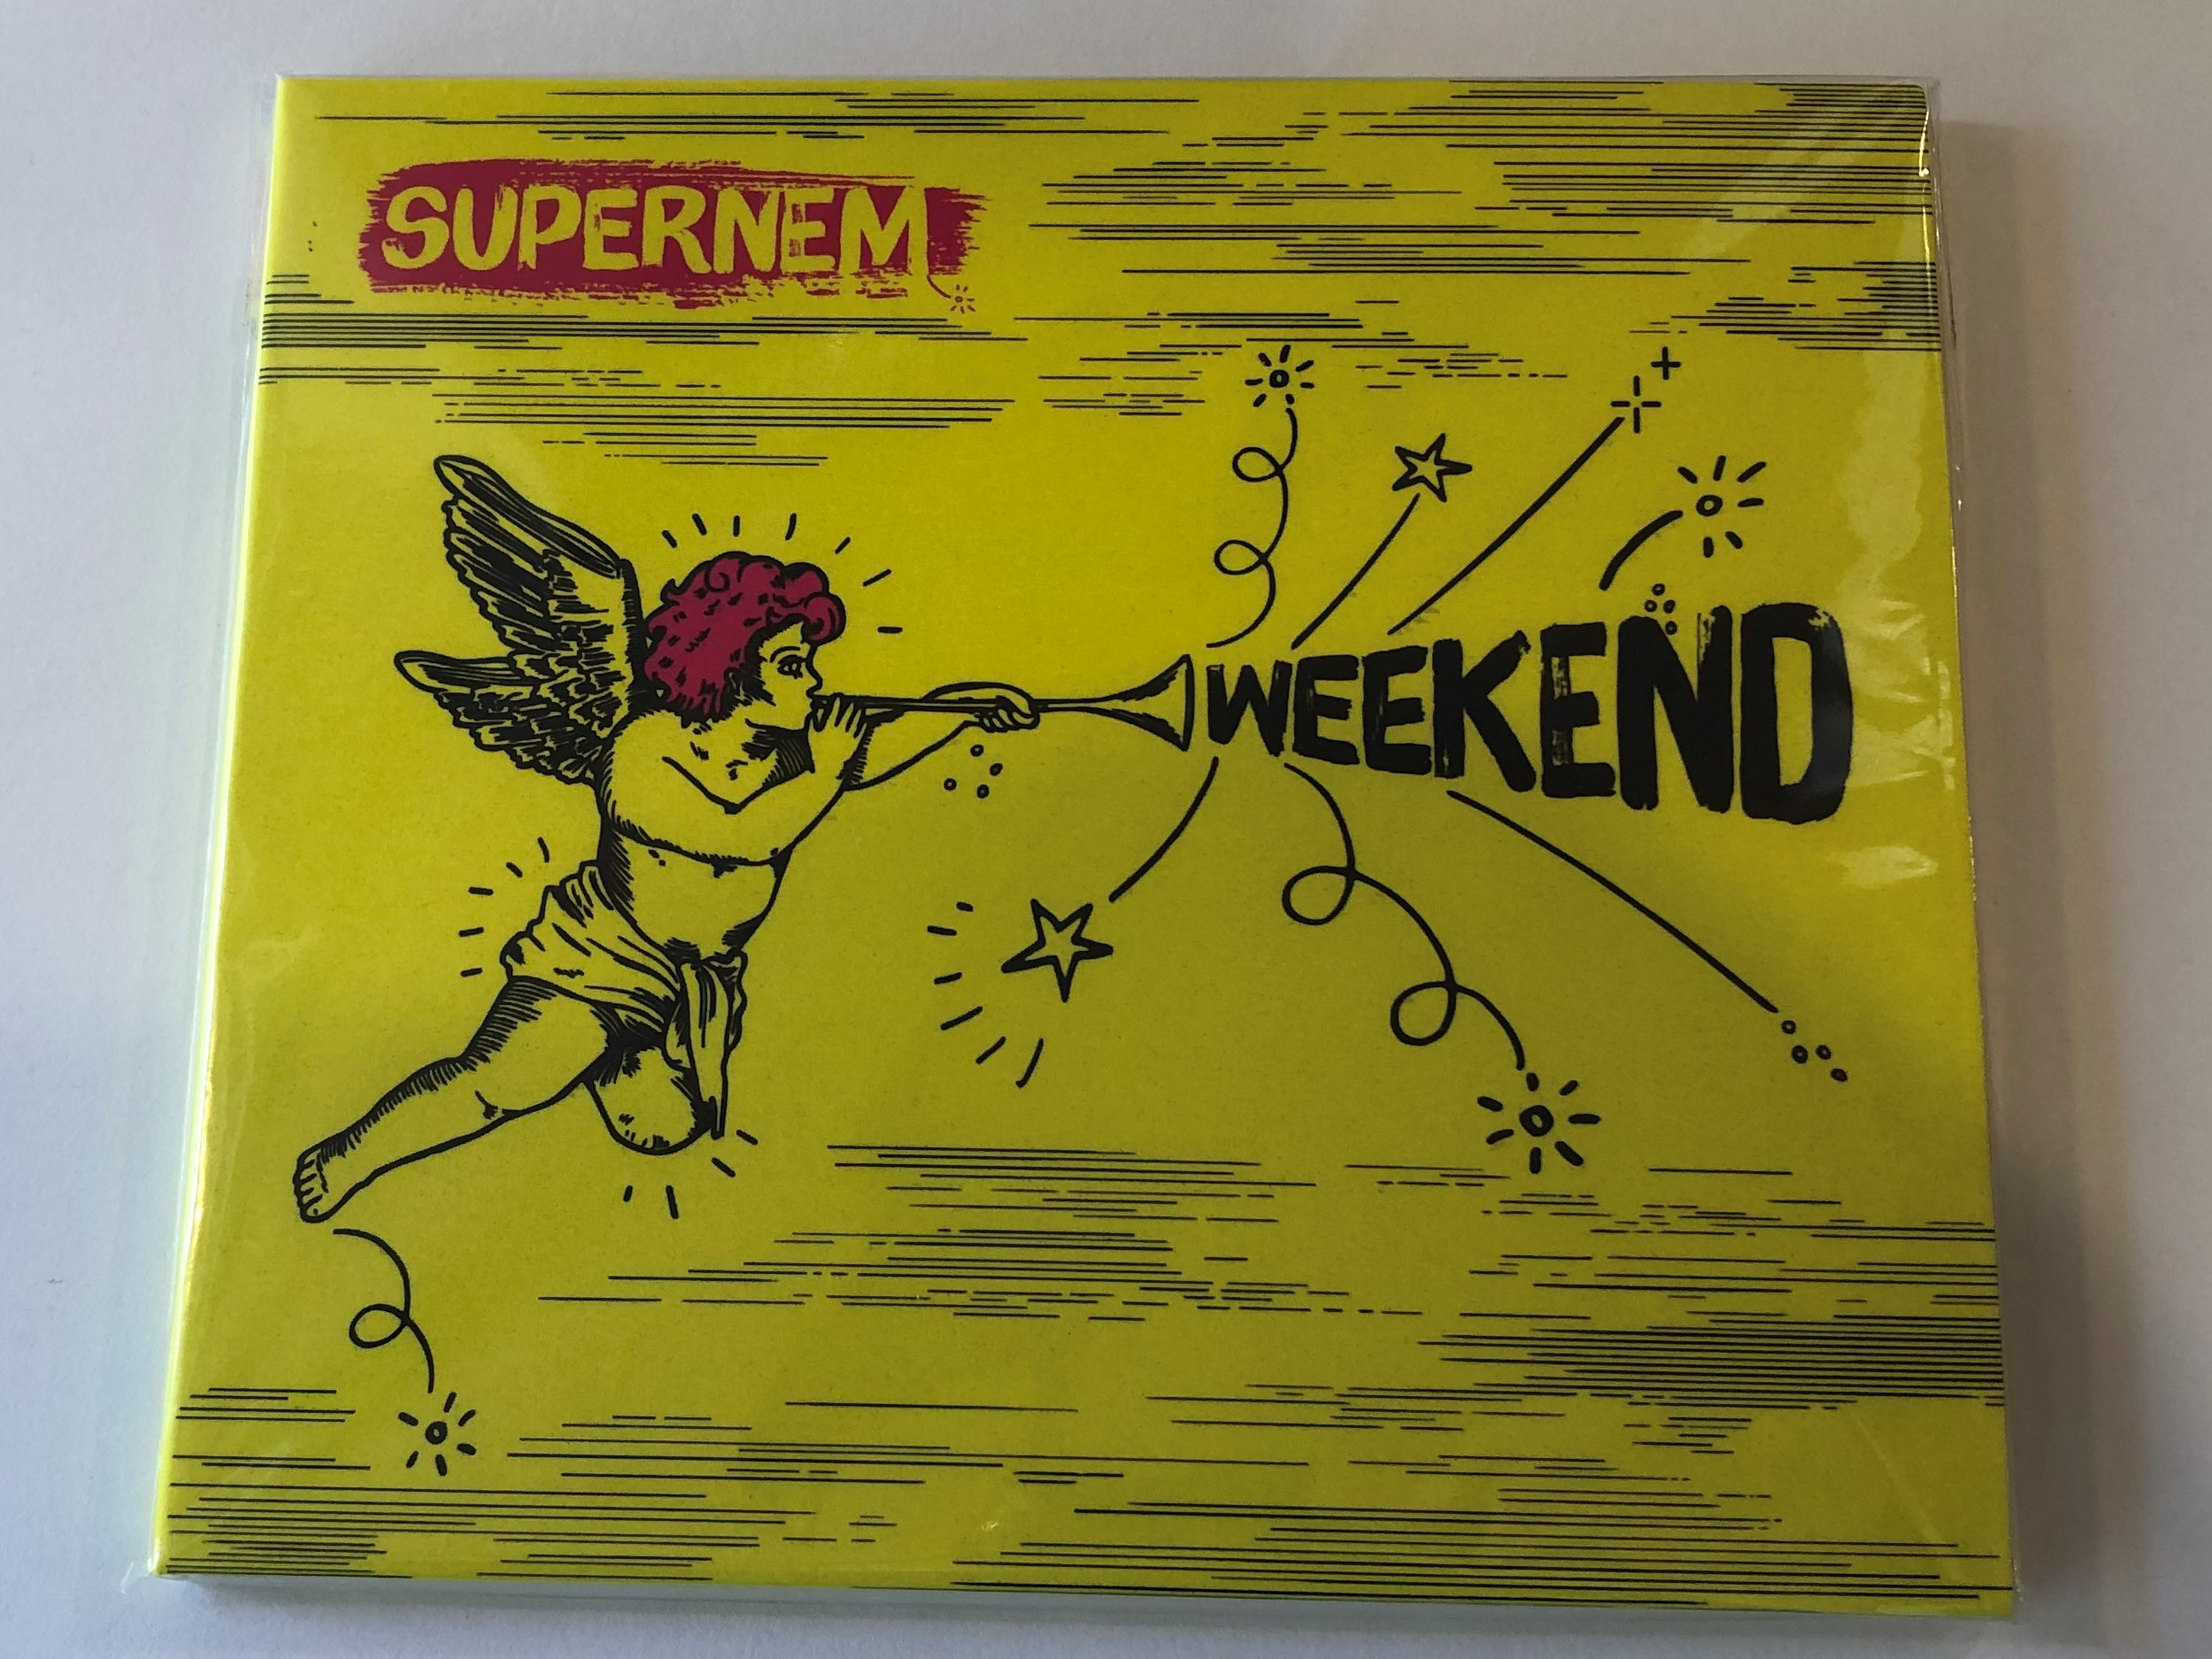 supernem-weekend-gold-record-audio-cd-2018-gr201802-1-.jpg